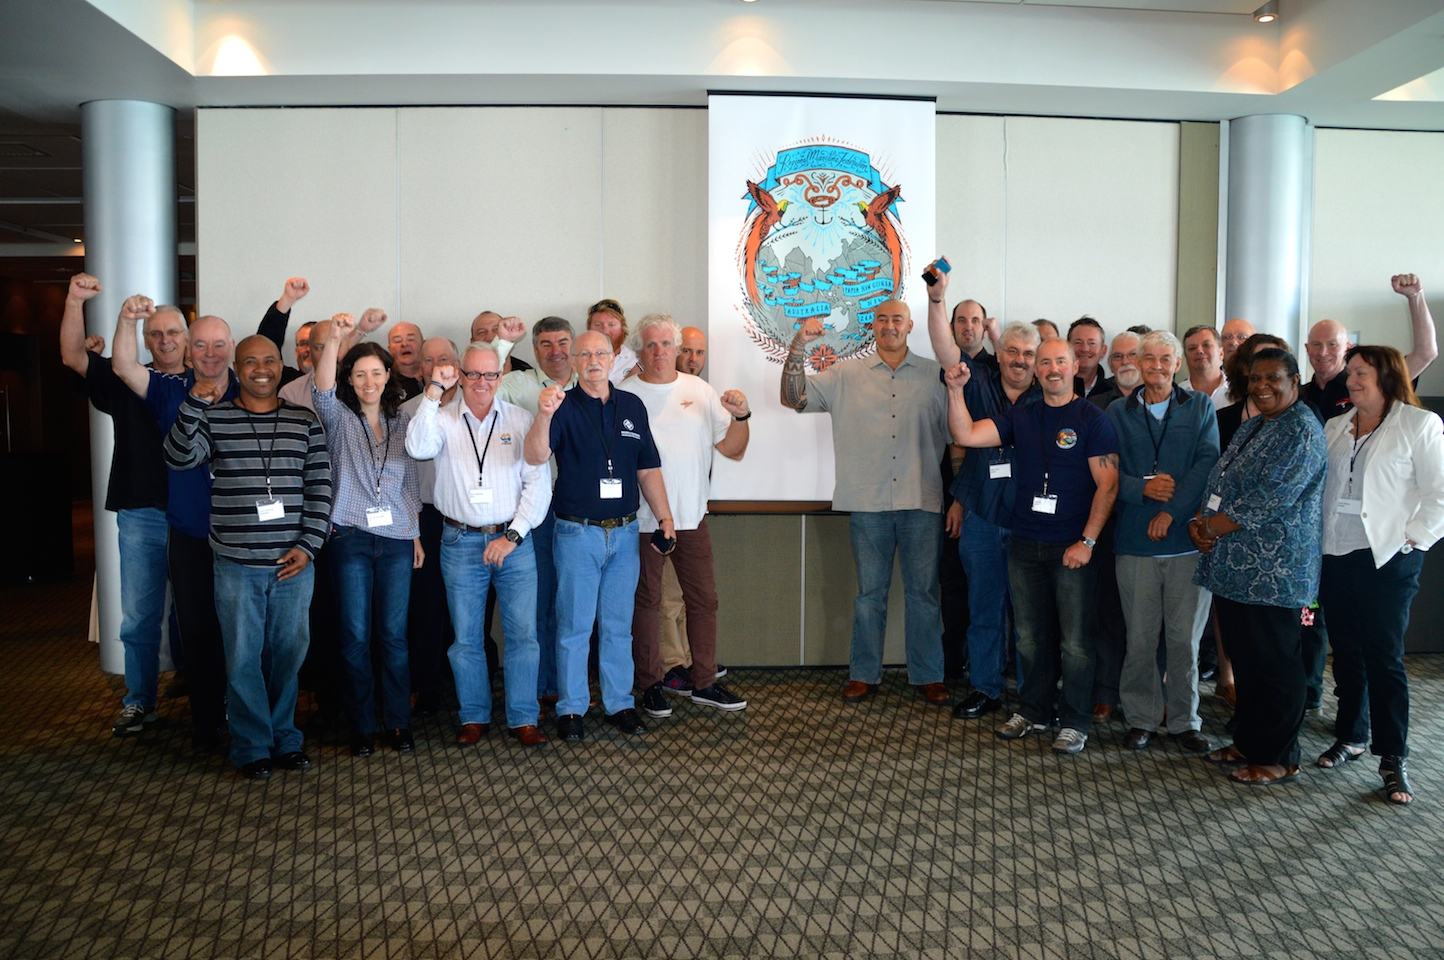 Maritime unions gather to strengthen South Pacific unionism